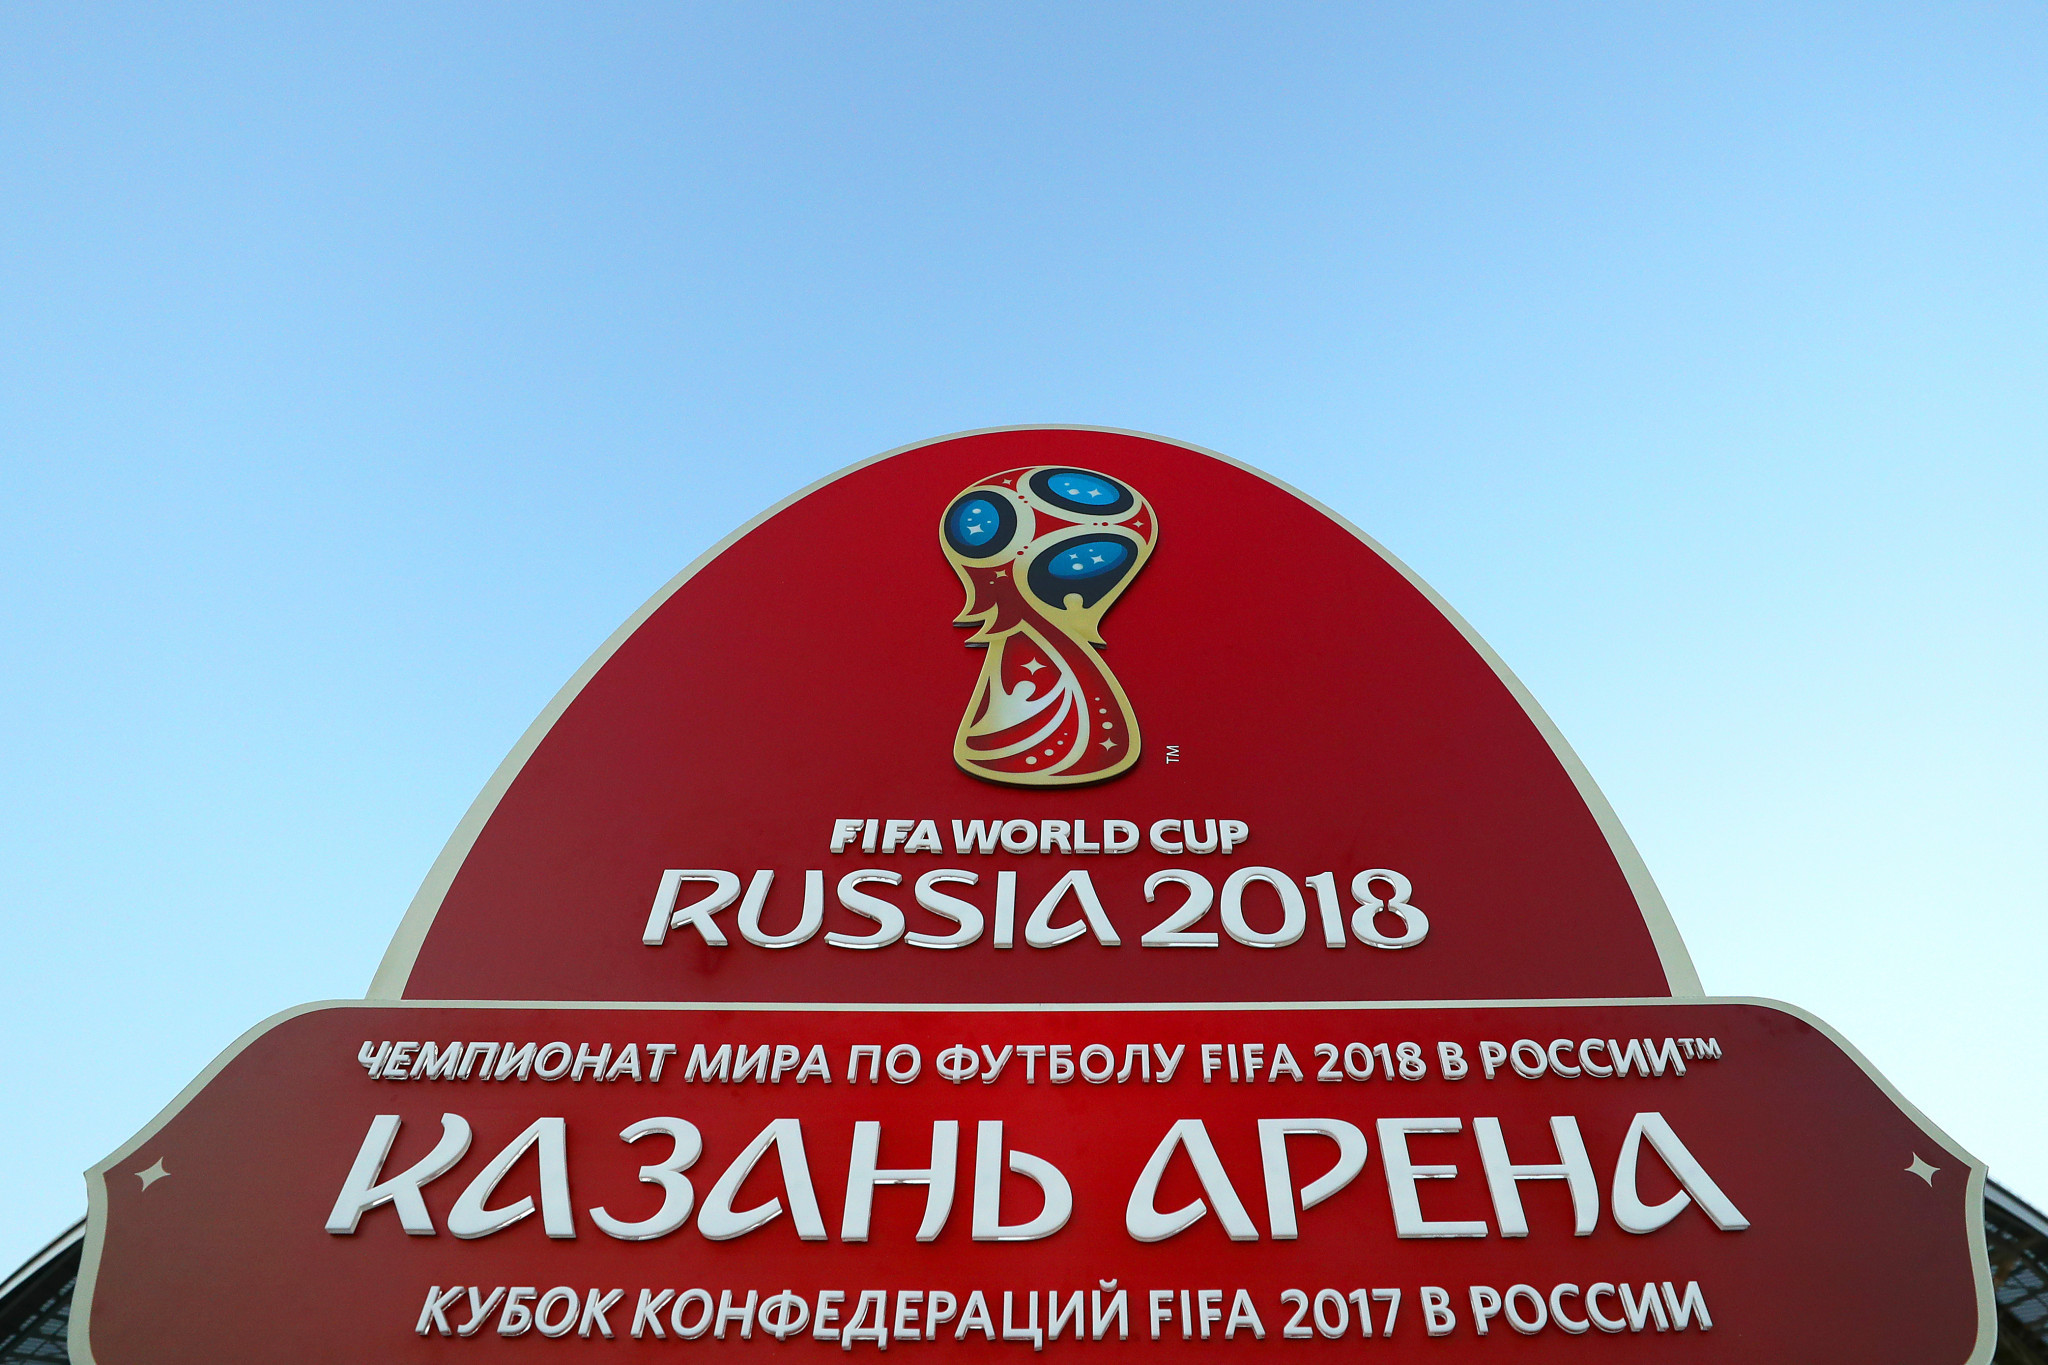 The FIFA Council has approved plans to increase prize money for the nations competing in next year's FIFA World Cup 2018 in Russia ©Getty Images